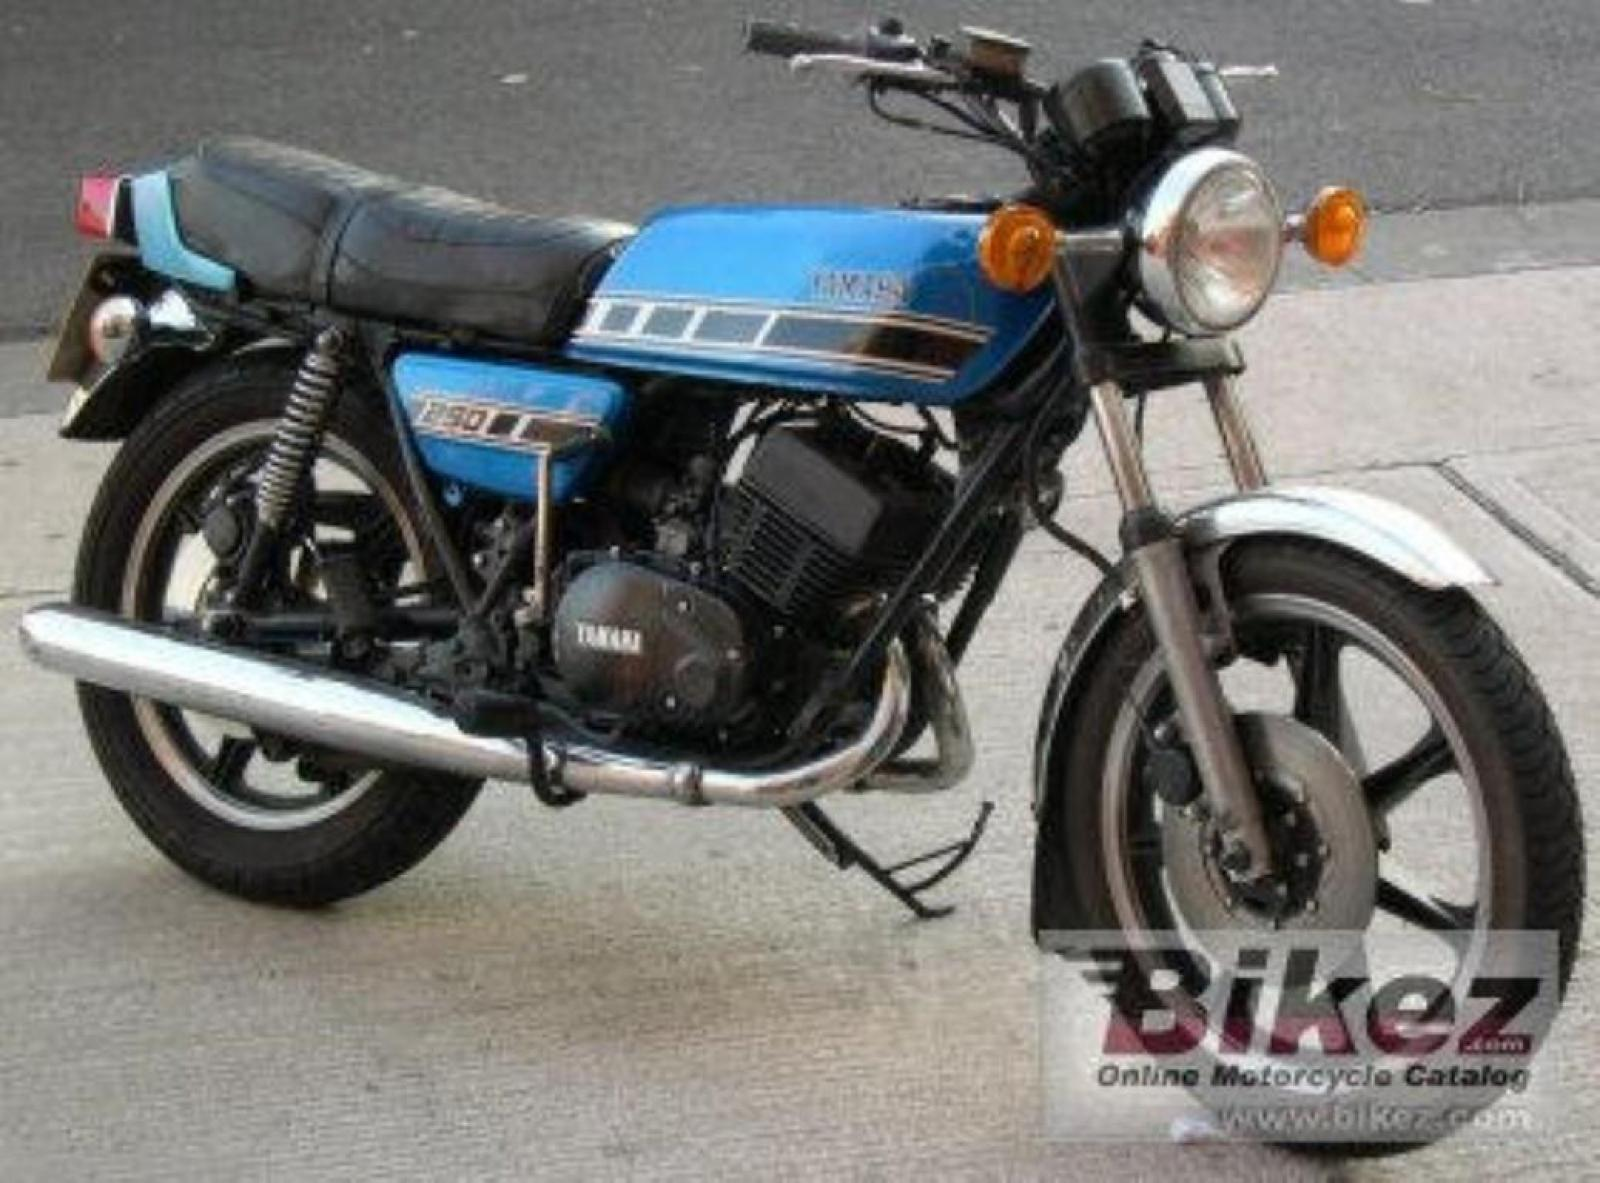 Picture credits yamaha click to submit more pictures - Yamaha Rd 250 Reduced Effect Gallery